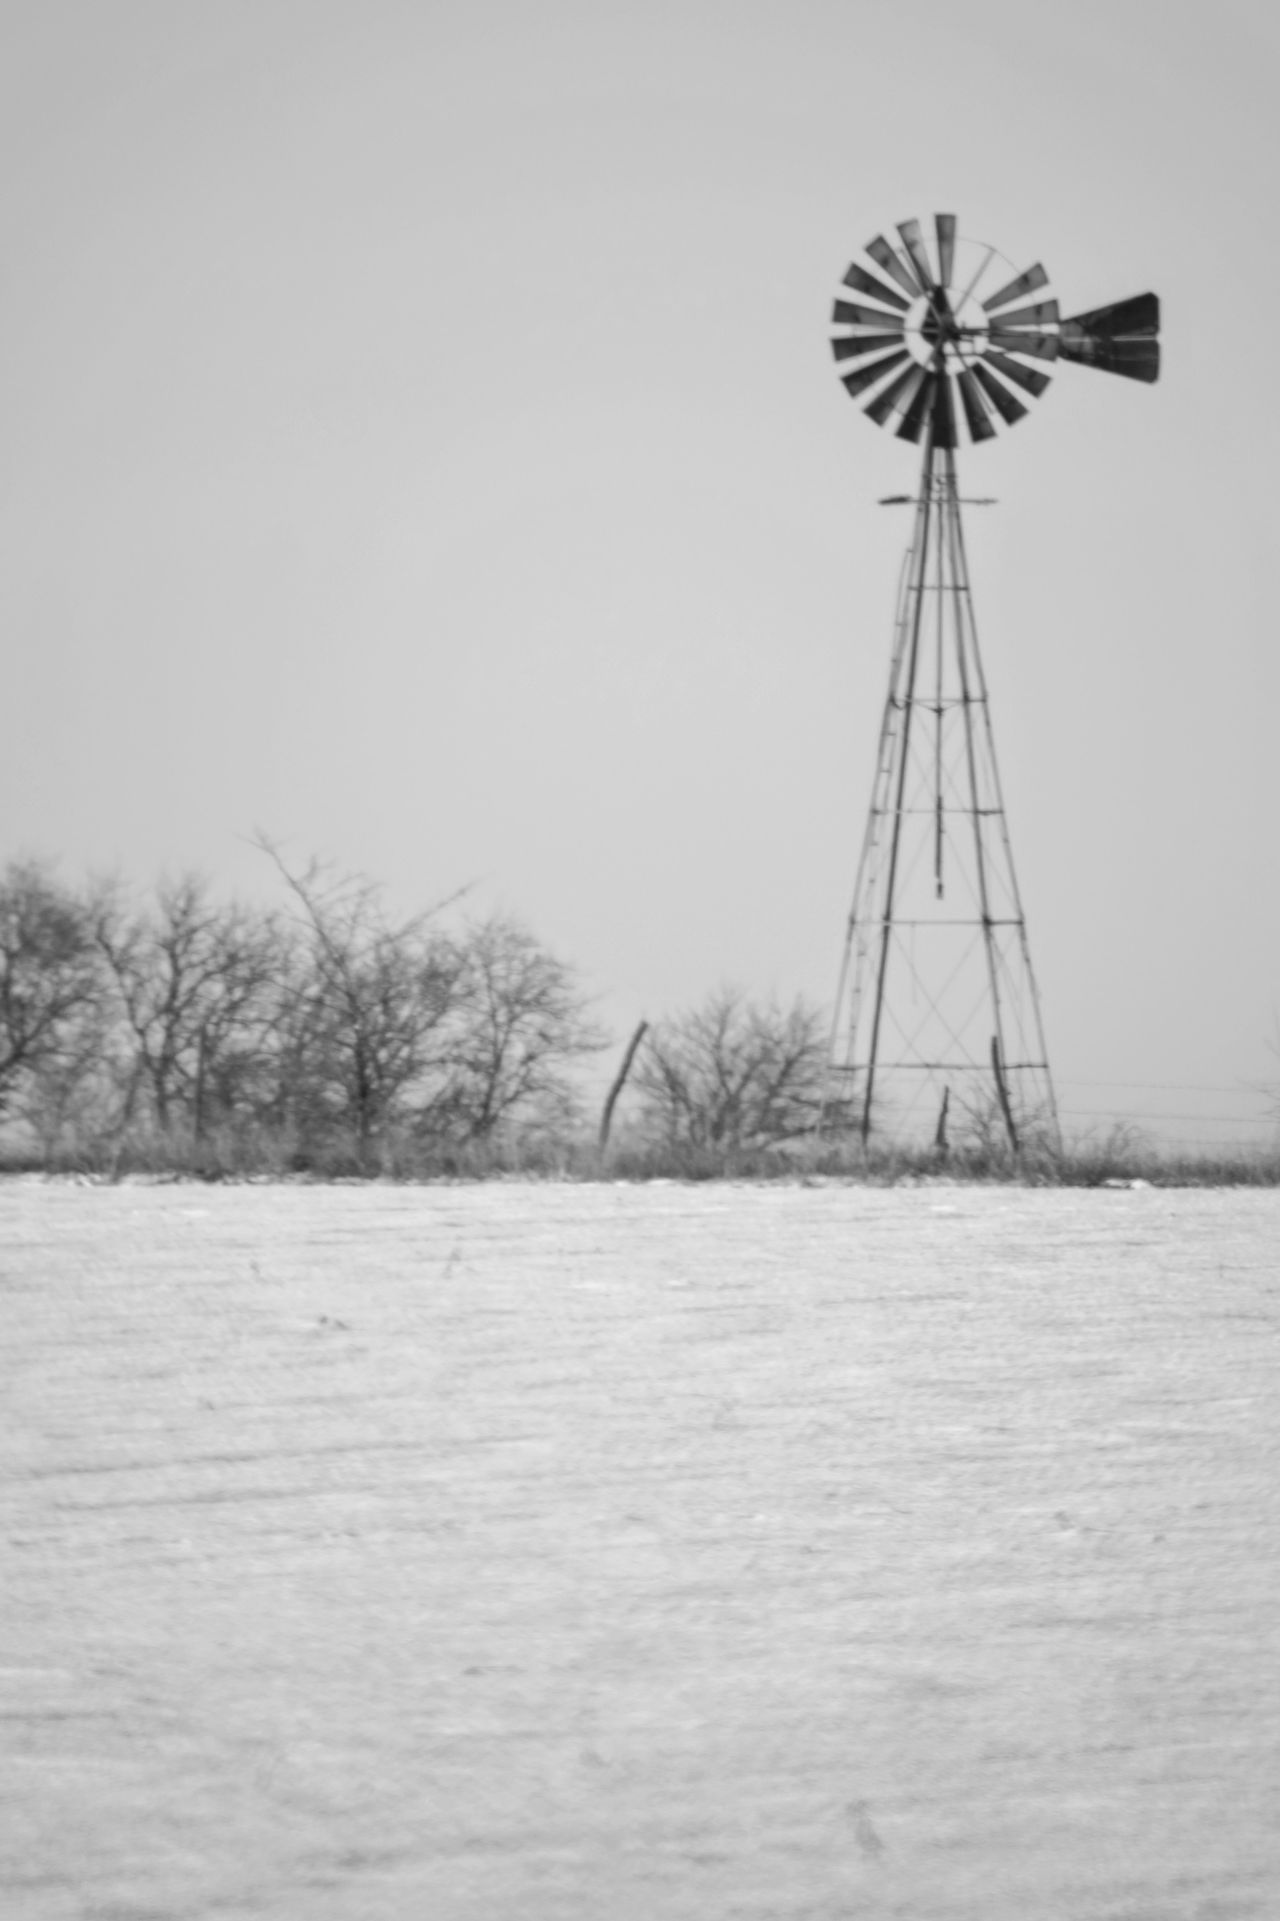 Visual Journal December 2016 Western, Nebraska (Fujifilm Xt1,Nikkor 500mm f8) edited with Google Photos. A Day In The Life Camera Work Cold Temperature Eye For Photography EyeEm Best Shots Farmland FUJIFILM X-T1 Great Plains Manual Focus MidWest My Neighborhood Nikkor 500mm F8 No People Outdoors Photo Diary Rural America Sky Small Town Stories Storytelling Vertical Visual Journal Wind Power Windmill Winter Wintertime